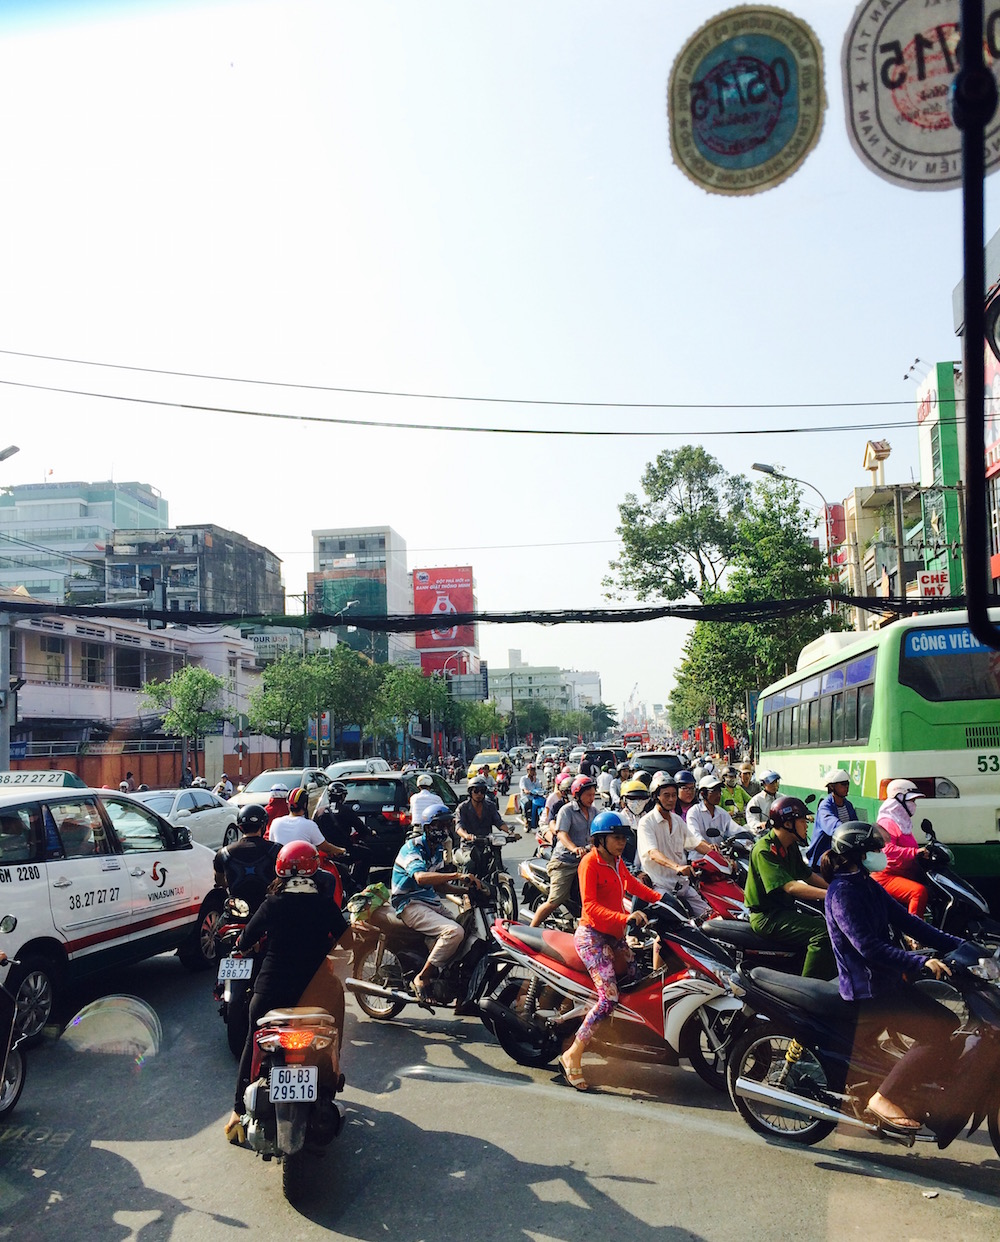 Traffic in Ho Chi Minh City, Vietnam